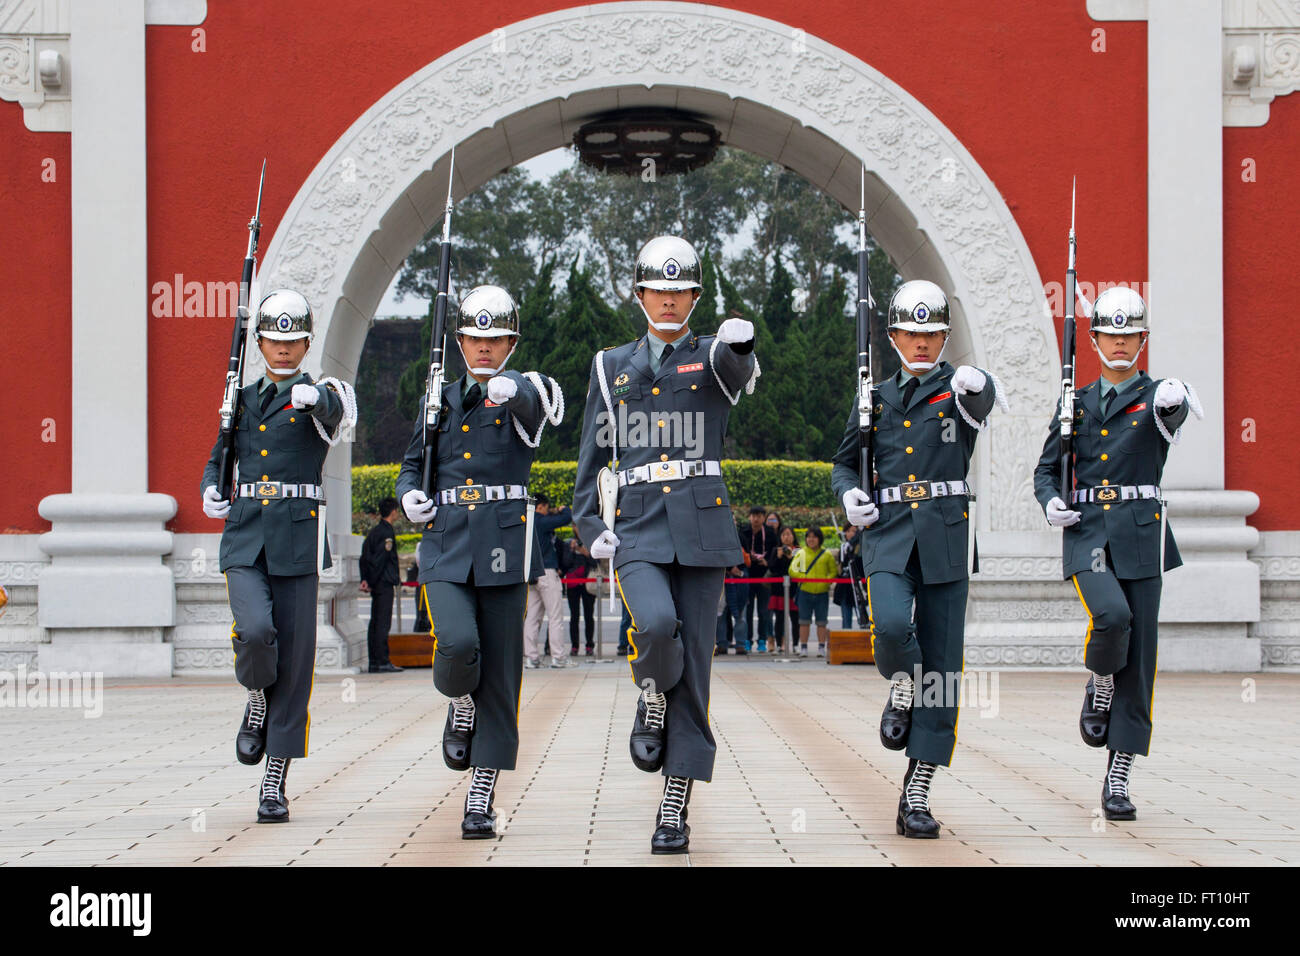 Changing of the Guard outside National Revolutionary Martyrs' Shrine, Taipeh, Northern Taiwan, Taiwan - Stock Image